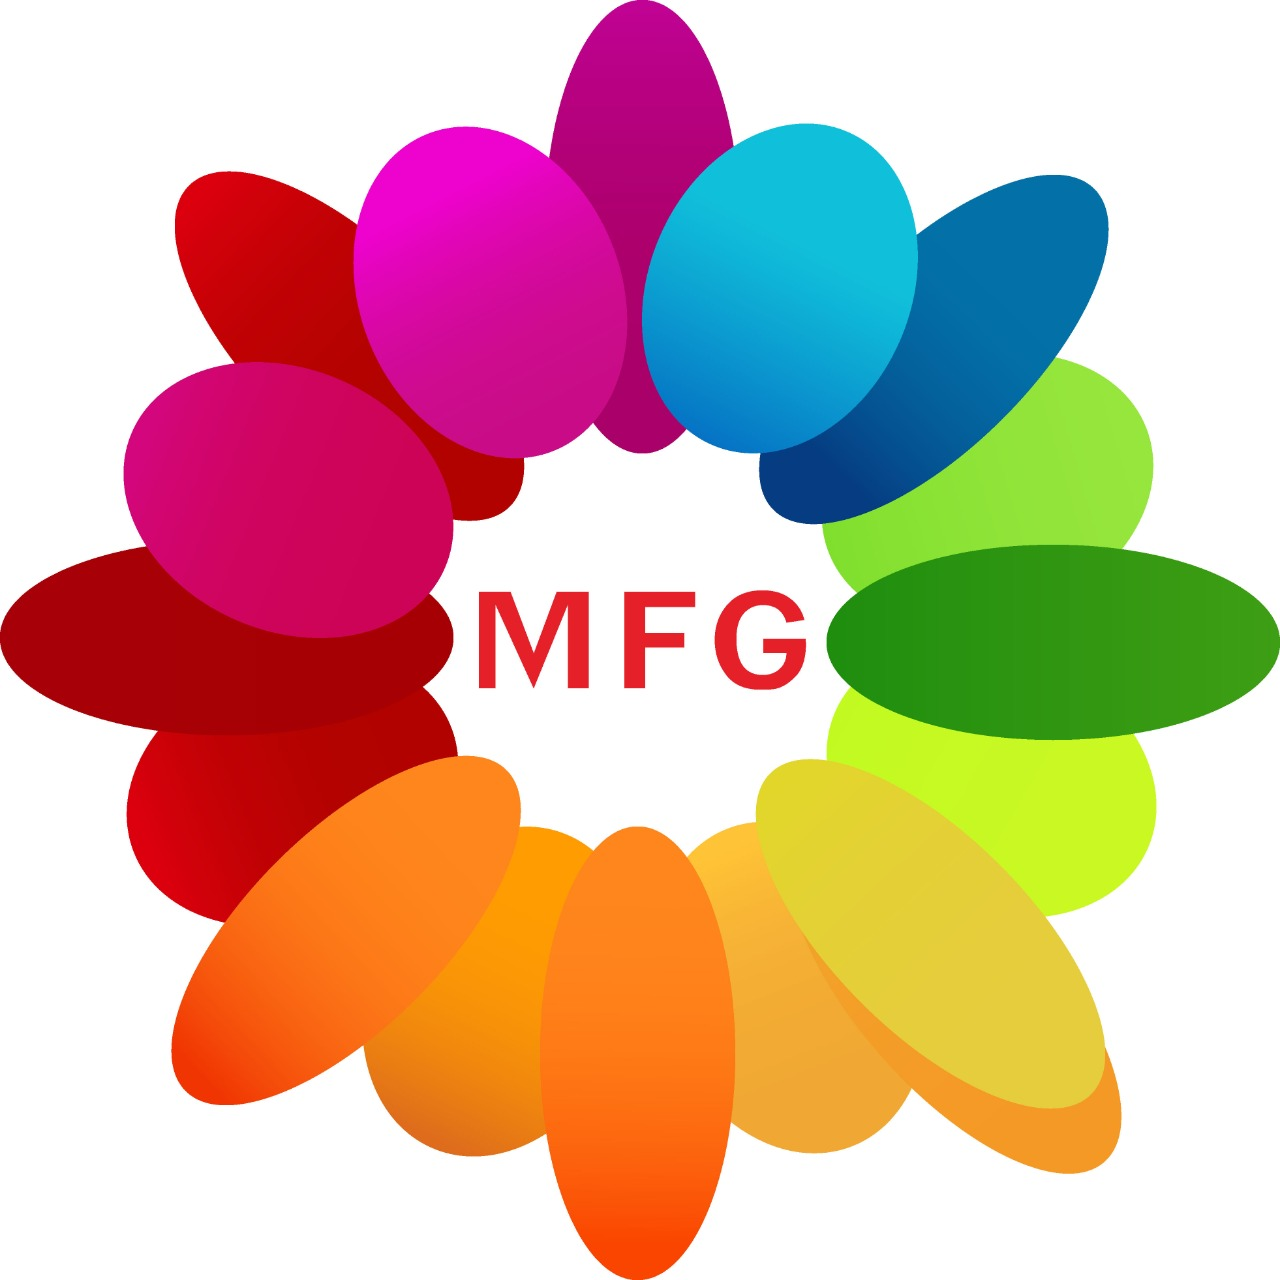 Bunch of 12 red roses with 6 inch white teddybear